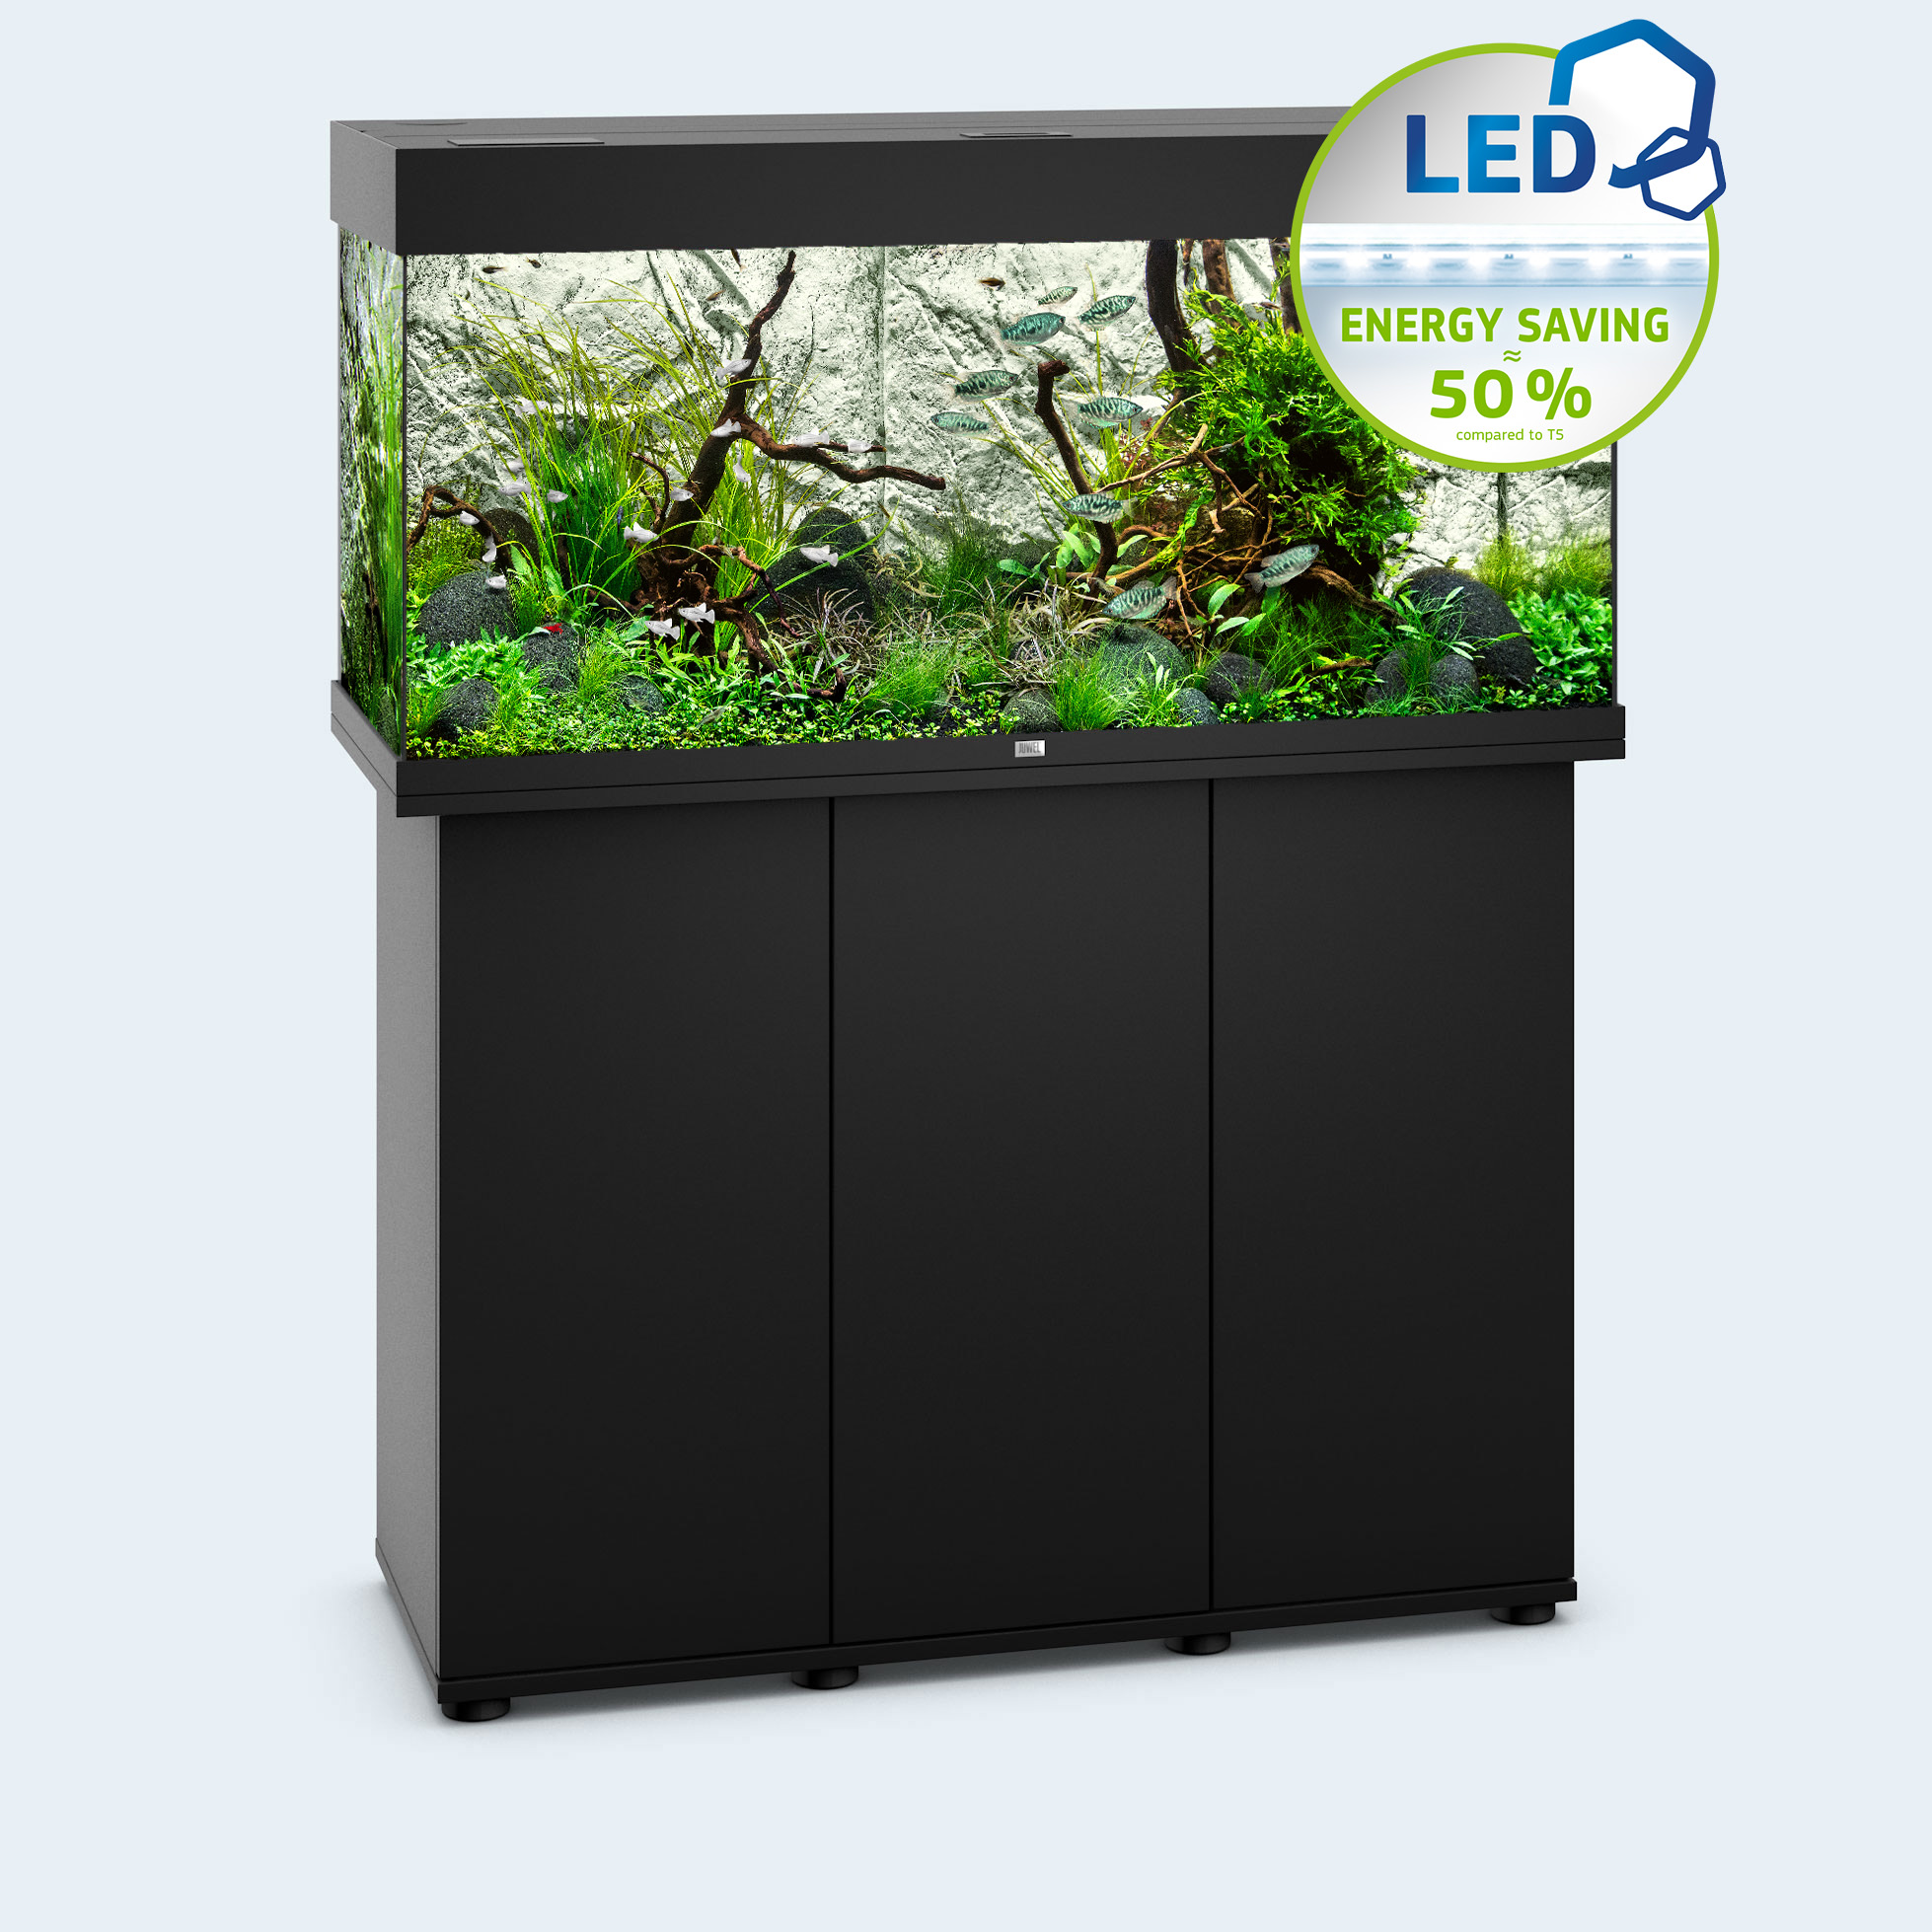 juwel aquarium rio 180 led aquarium schwarz bunte. Black Bedroom Furniture Sets. Home Design Ideas